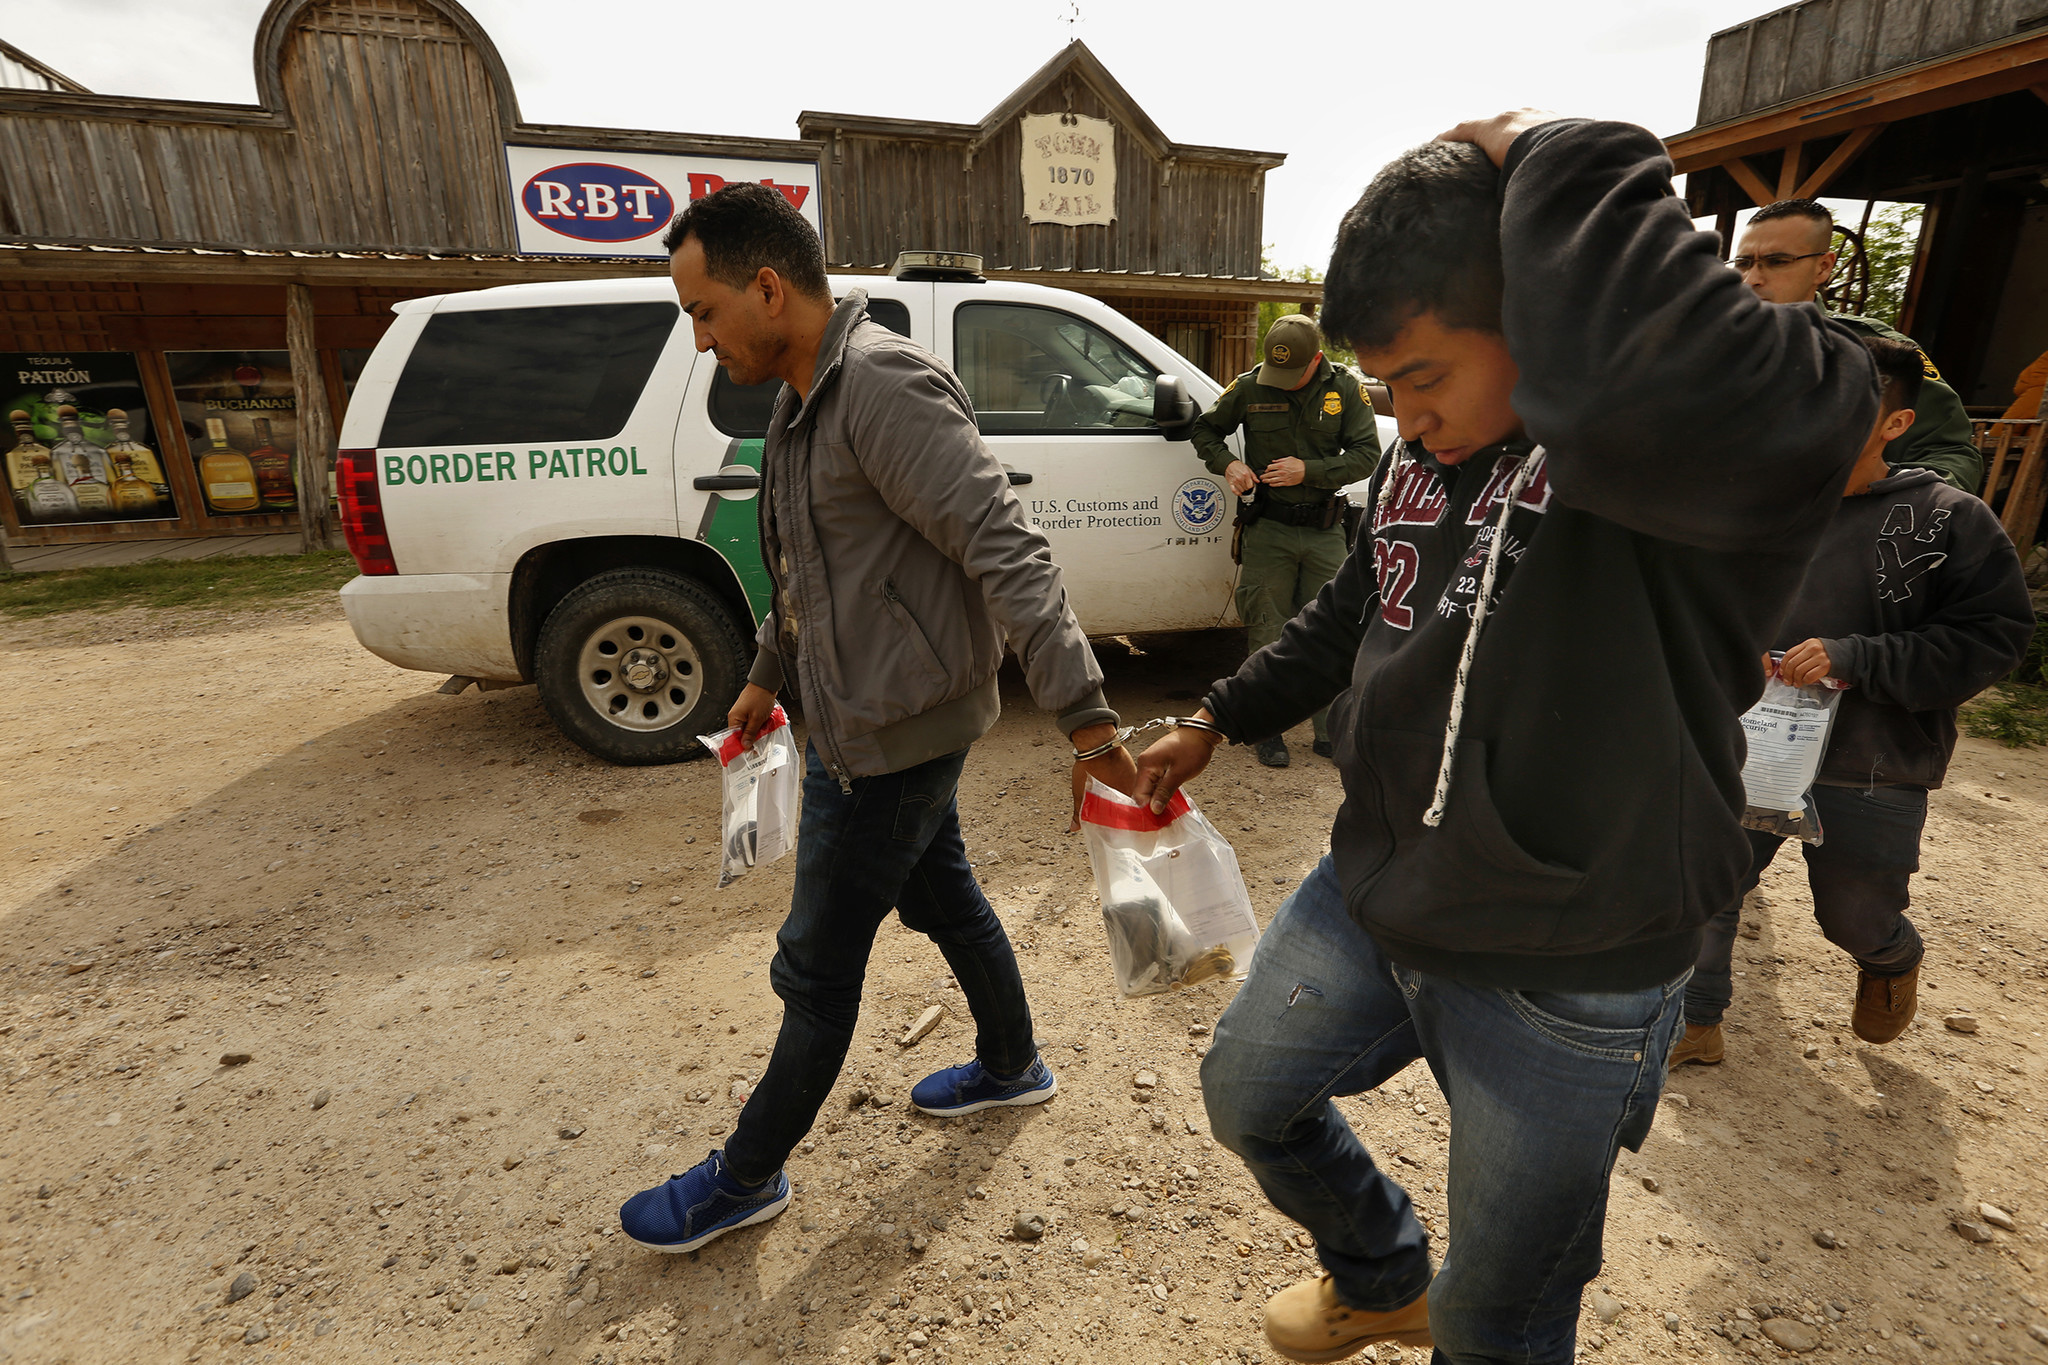 LOS EBANOS, TEXAS--March 15, 2018--On March 13, 2018, border patrol agents take 13 migrants into det